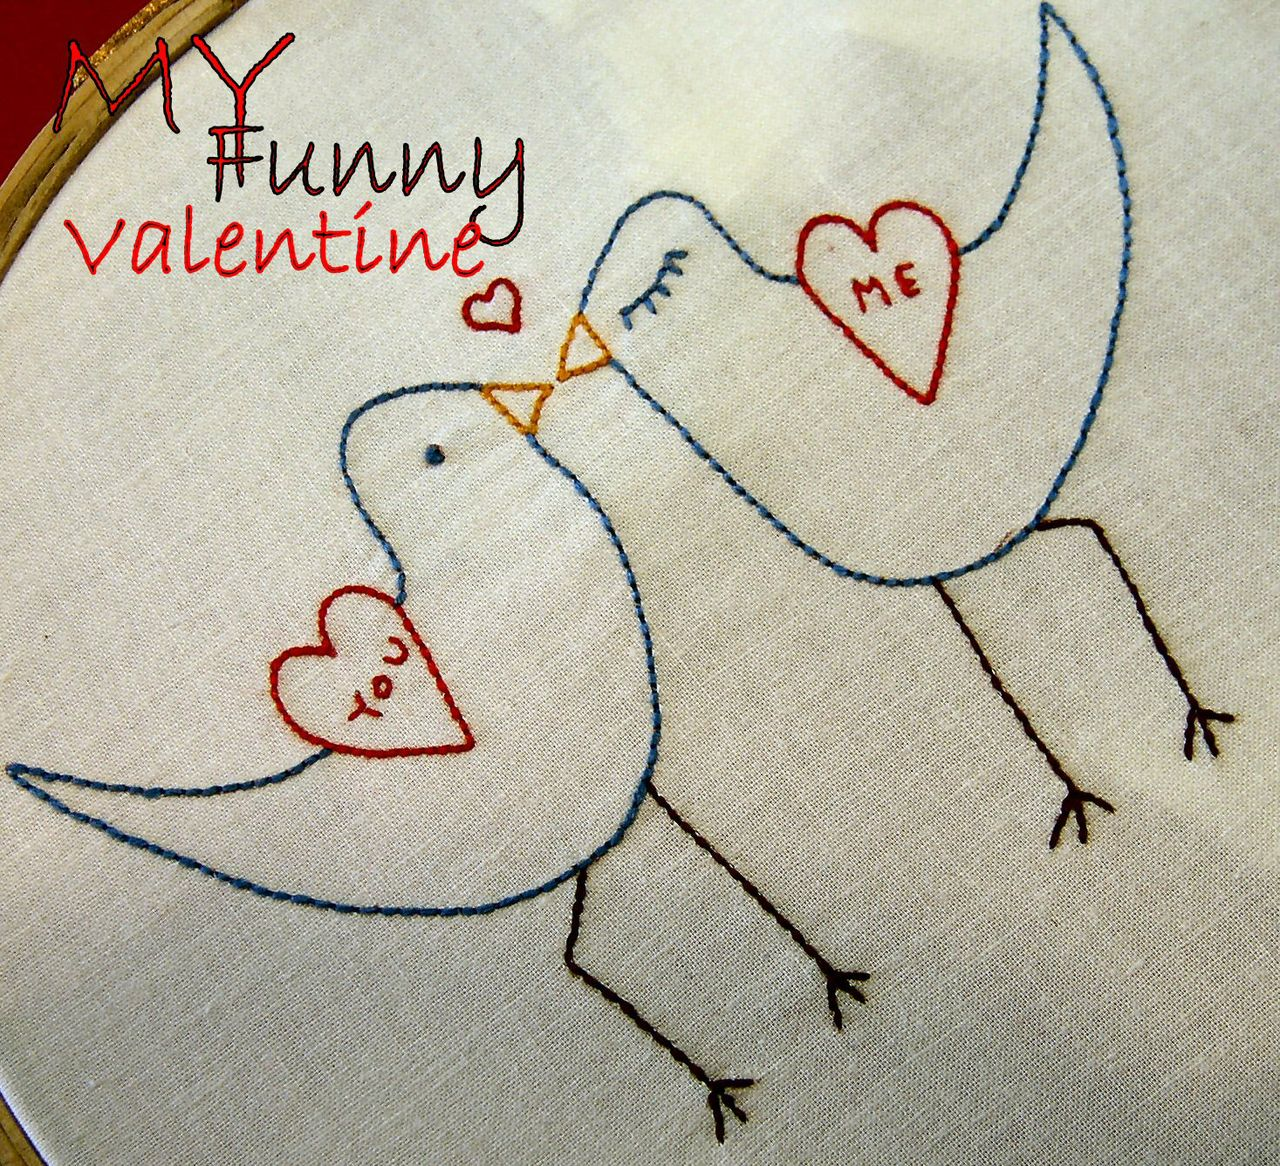 My Funny Valentine  Hand Embroidery Pattern